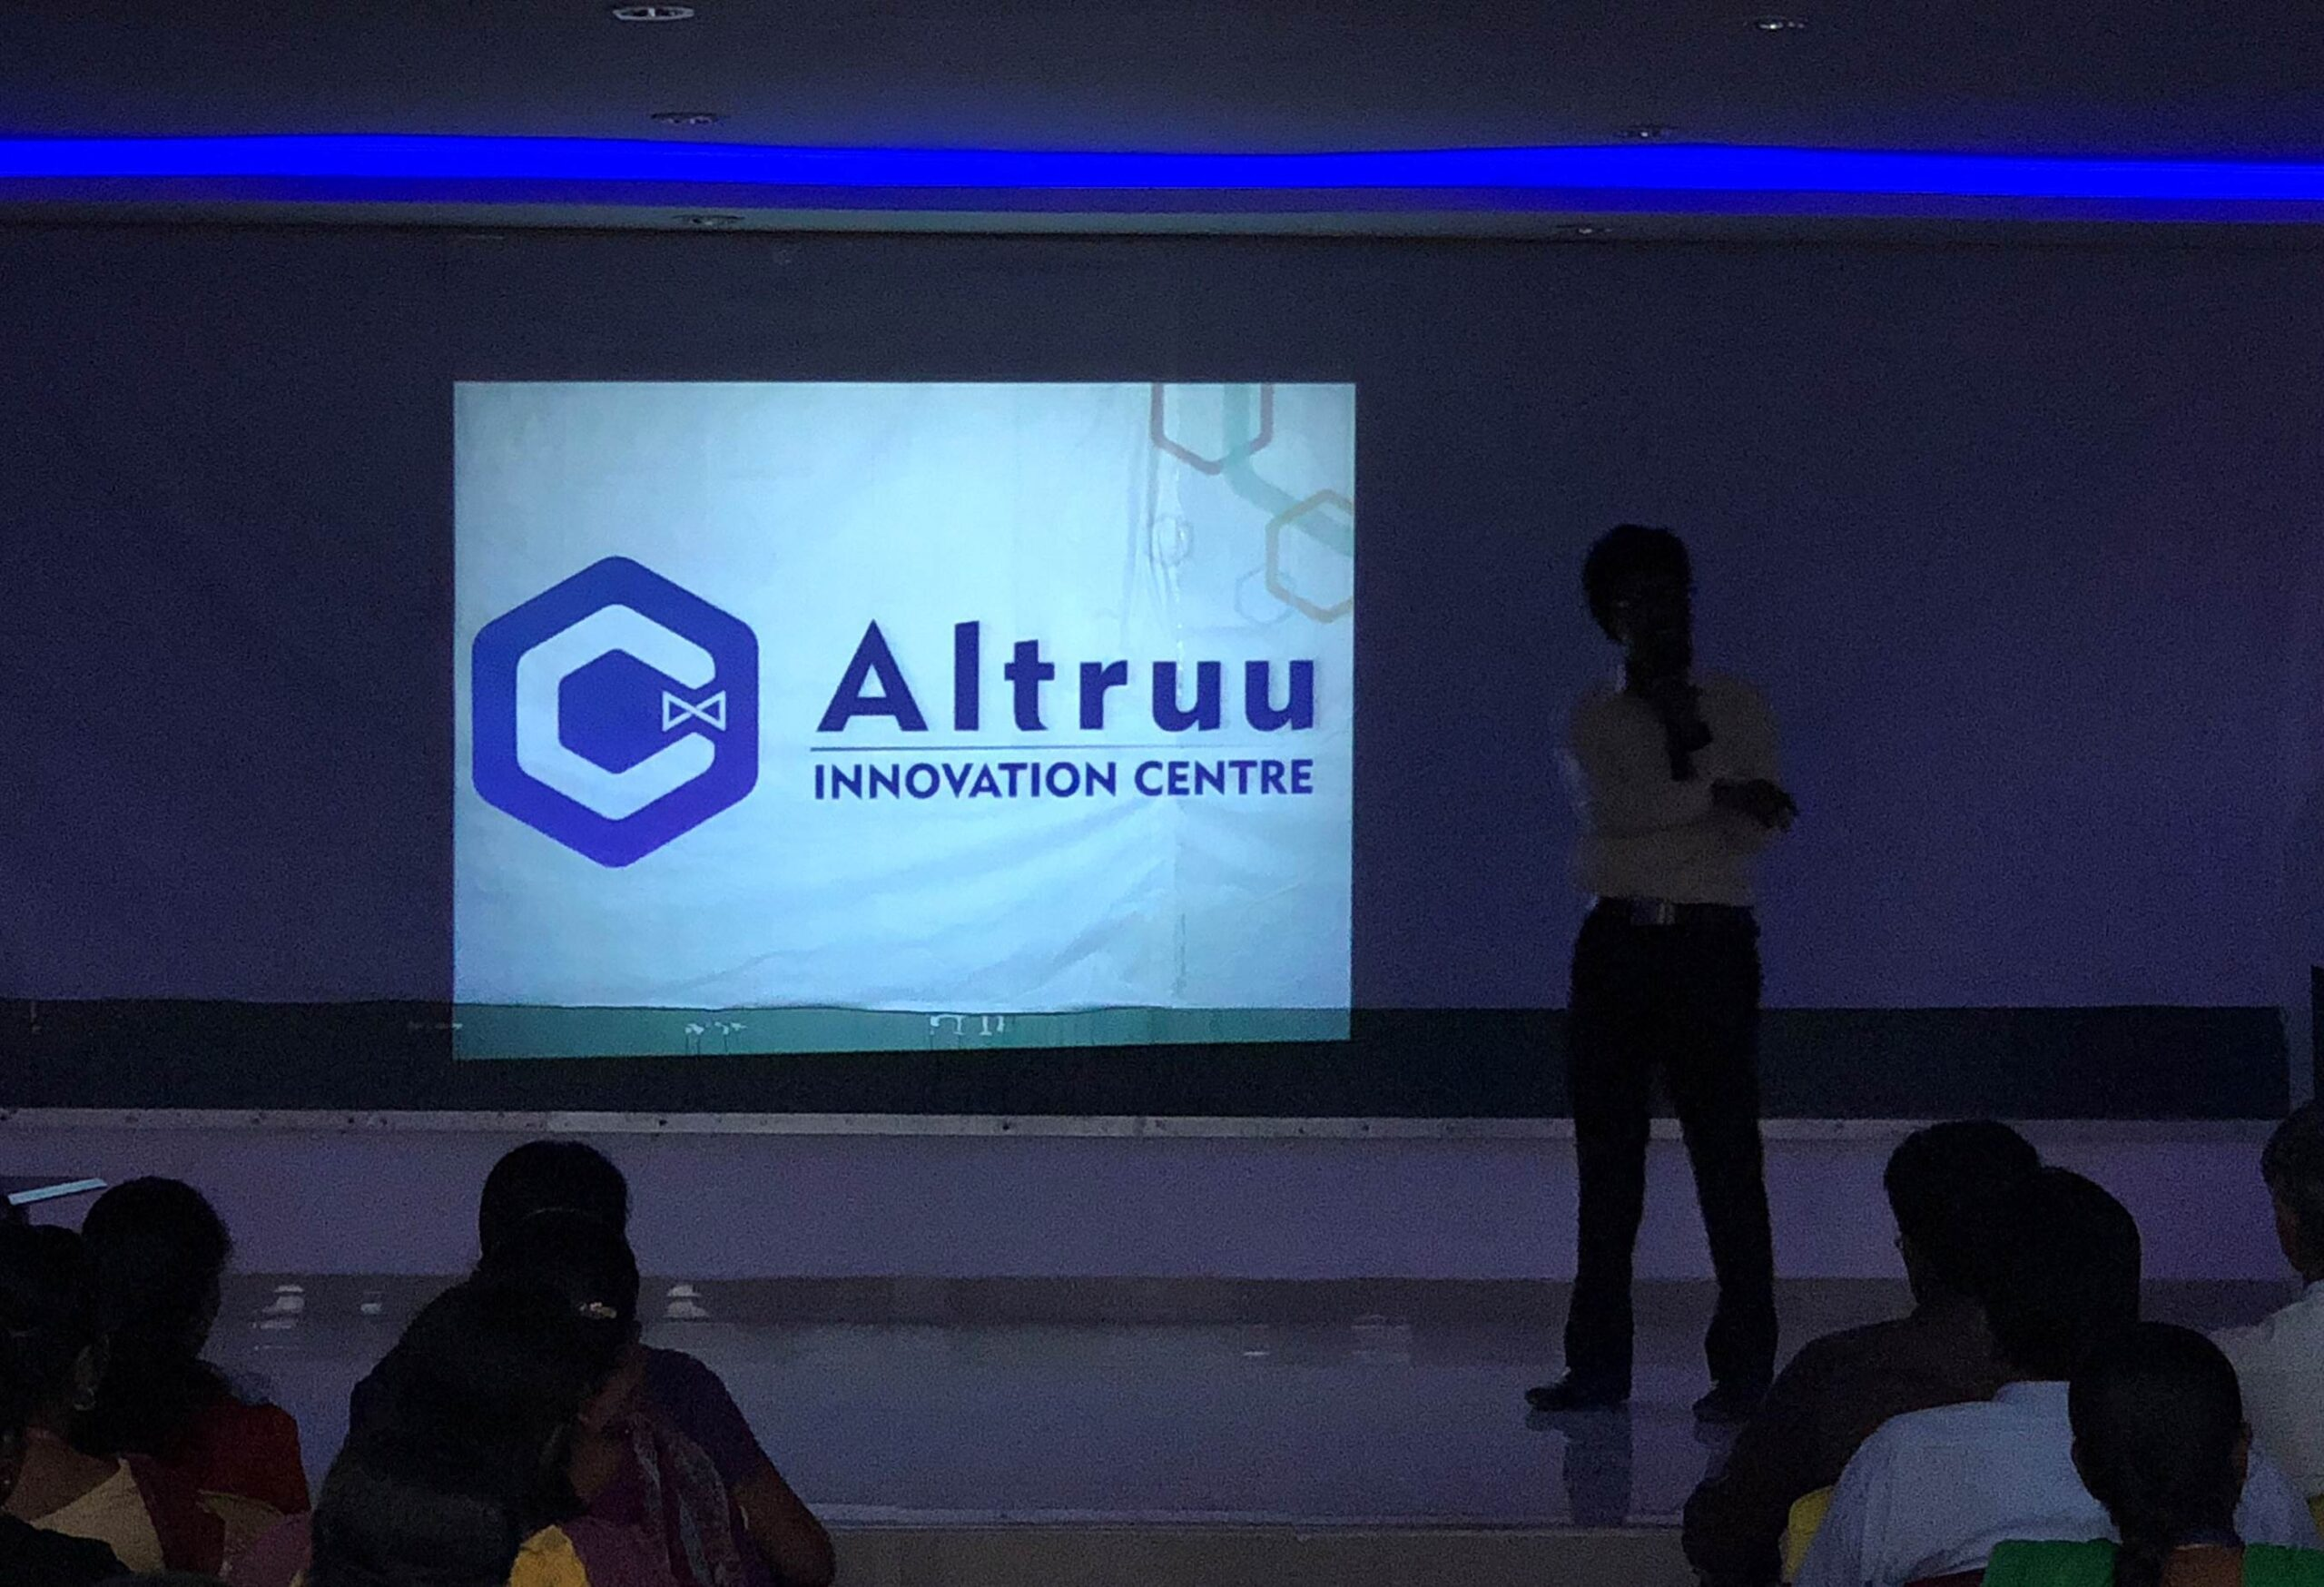 tenith_adithyaa_image_social_altruuinnovationcentre0